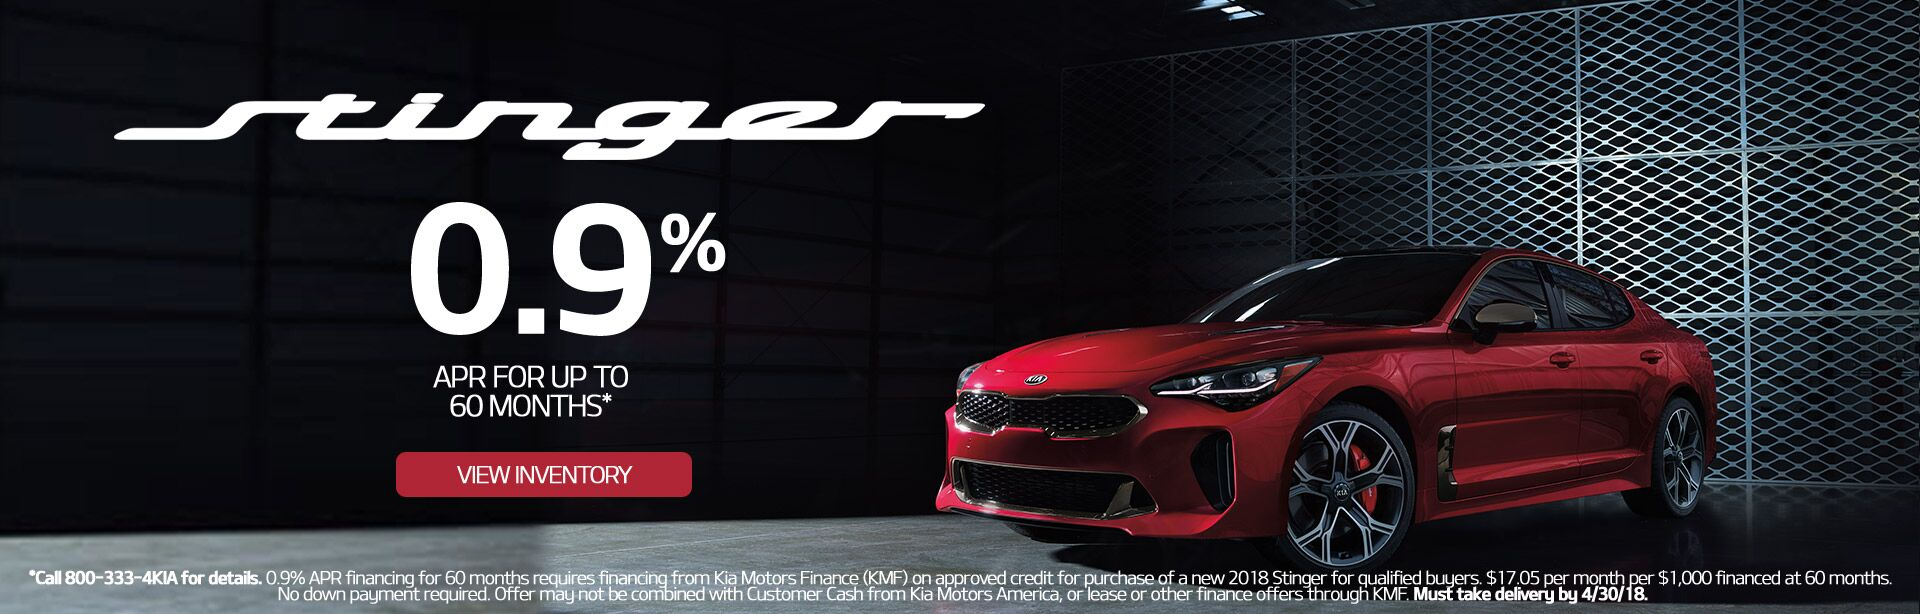 Stinger 0.9% for 60